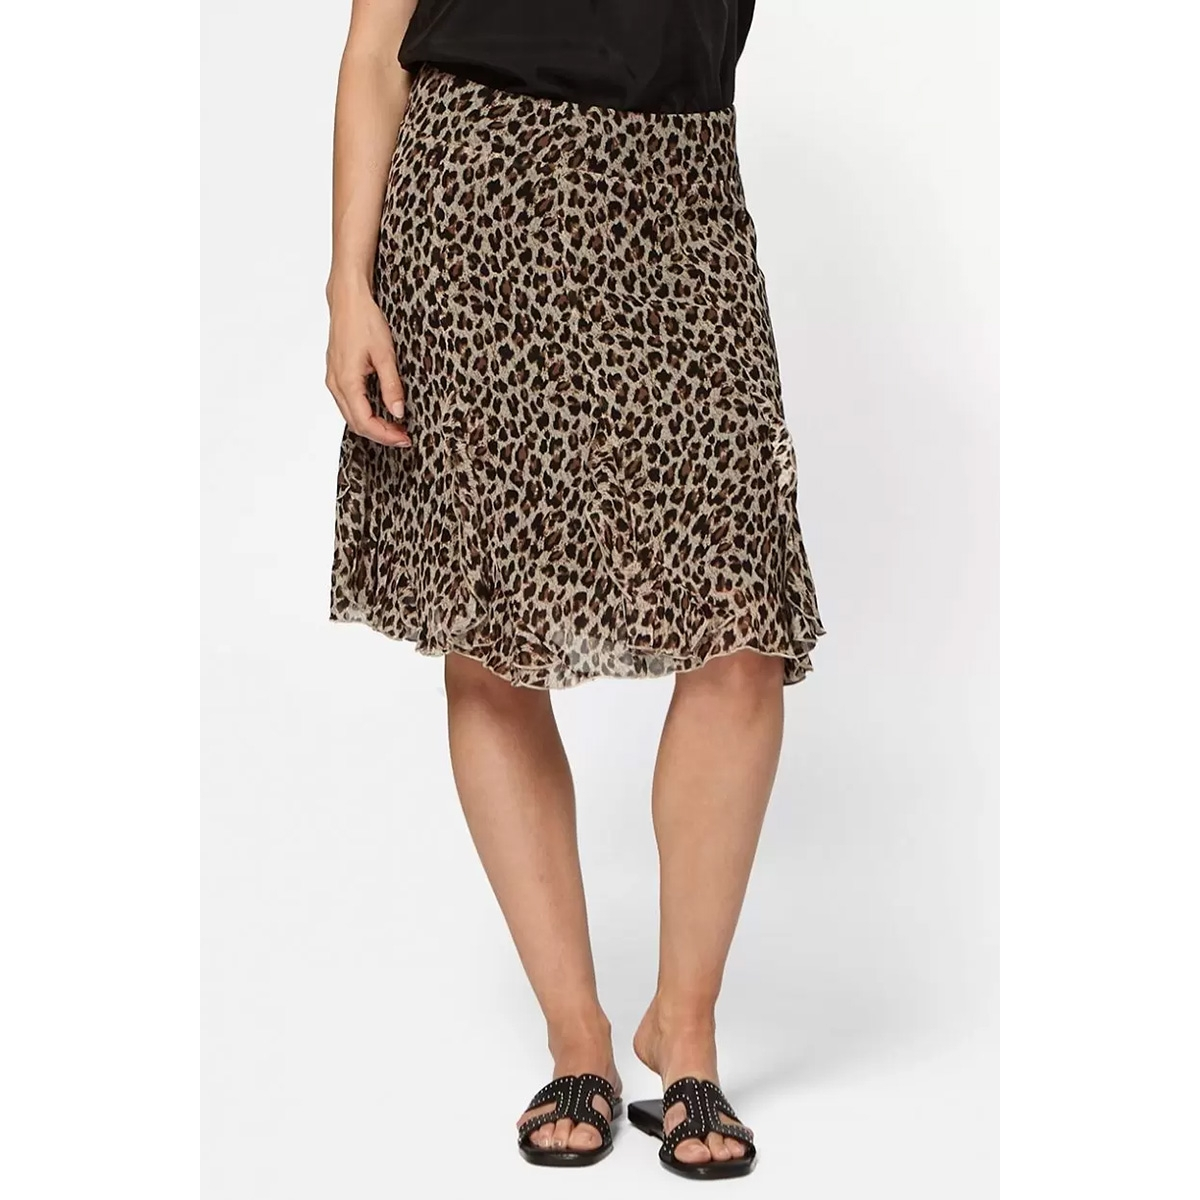 fame skirt s20 39 circle of trust rok 4680 leopard